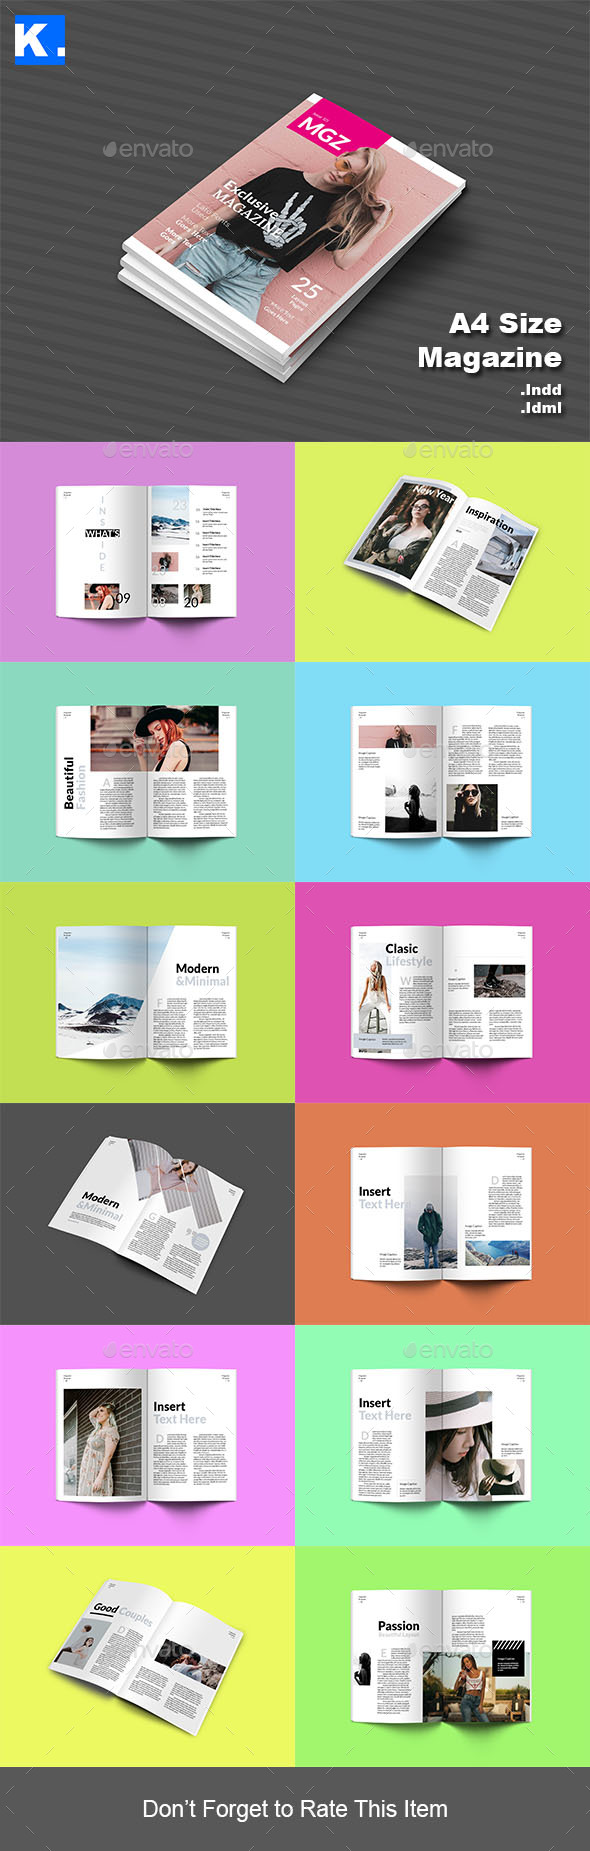 Indesign Magazine Template 11 - Magazines Print Templates